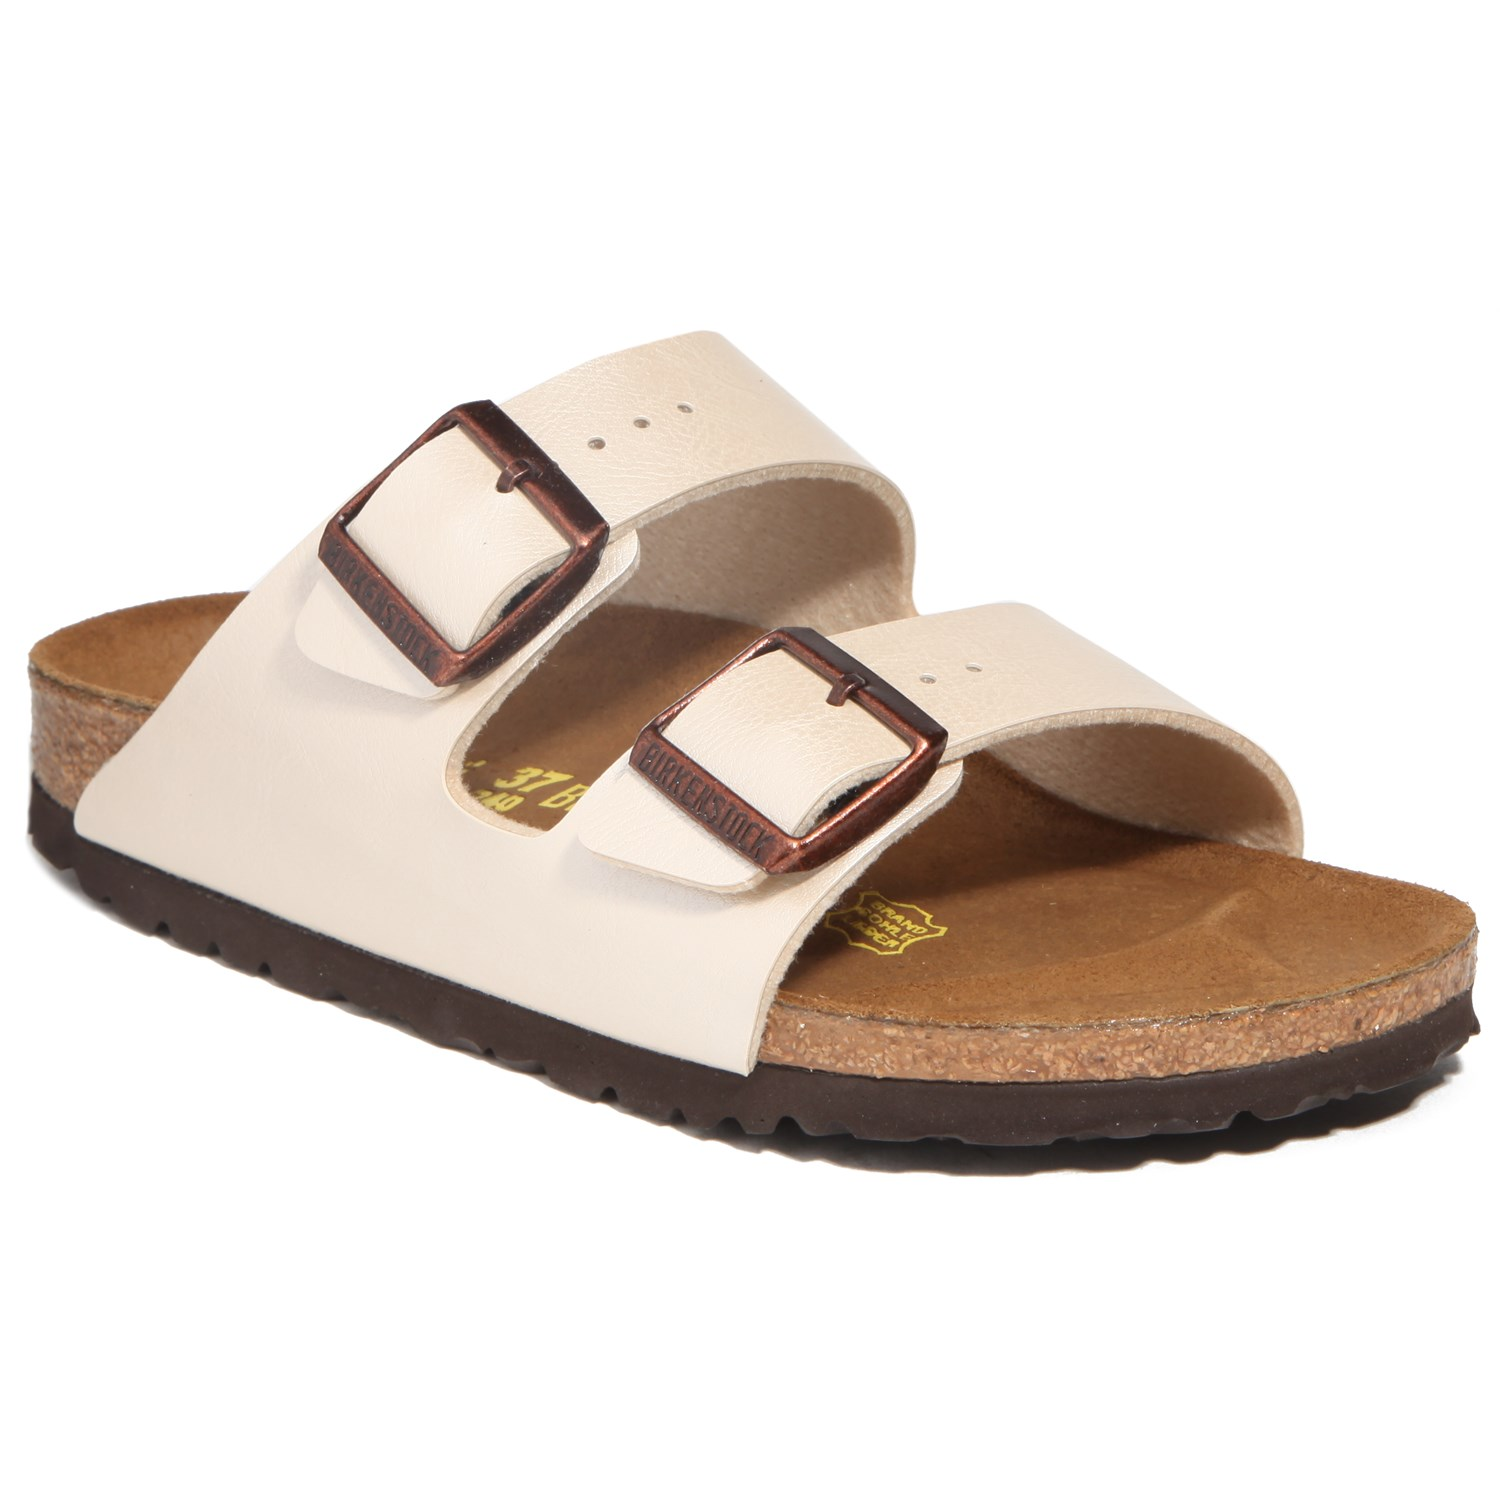 Amazing Birkenstock Arizona Sandals  Women39s